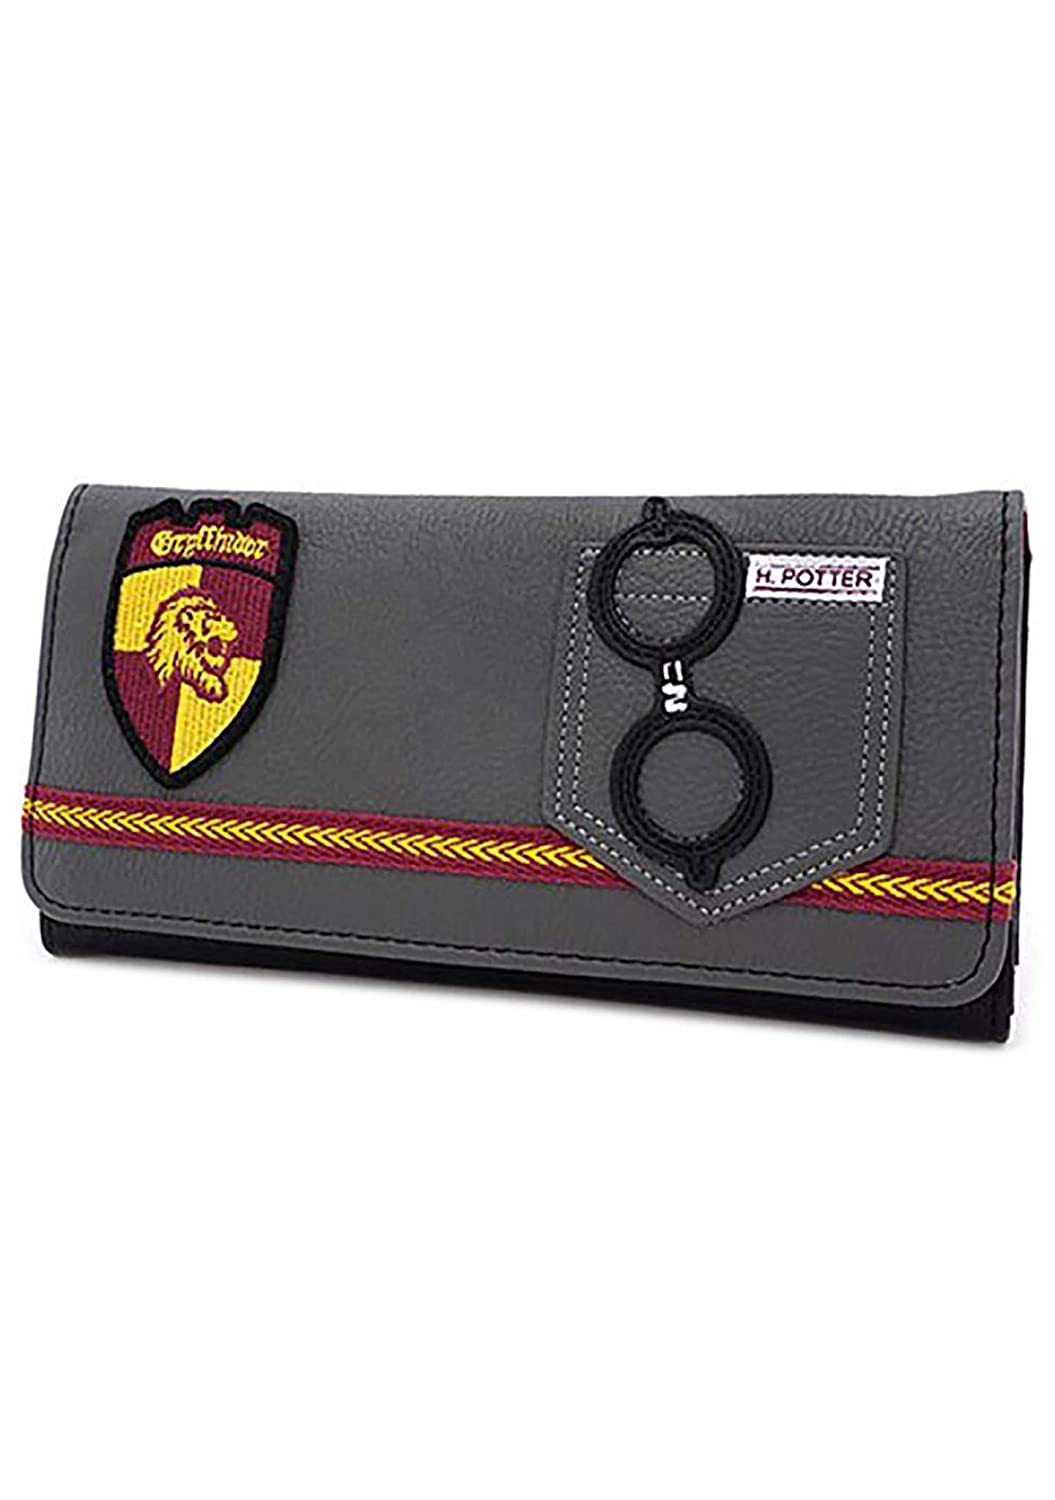 Loungefly x Harry Potter Gryffindor Trifold Wallet